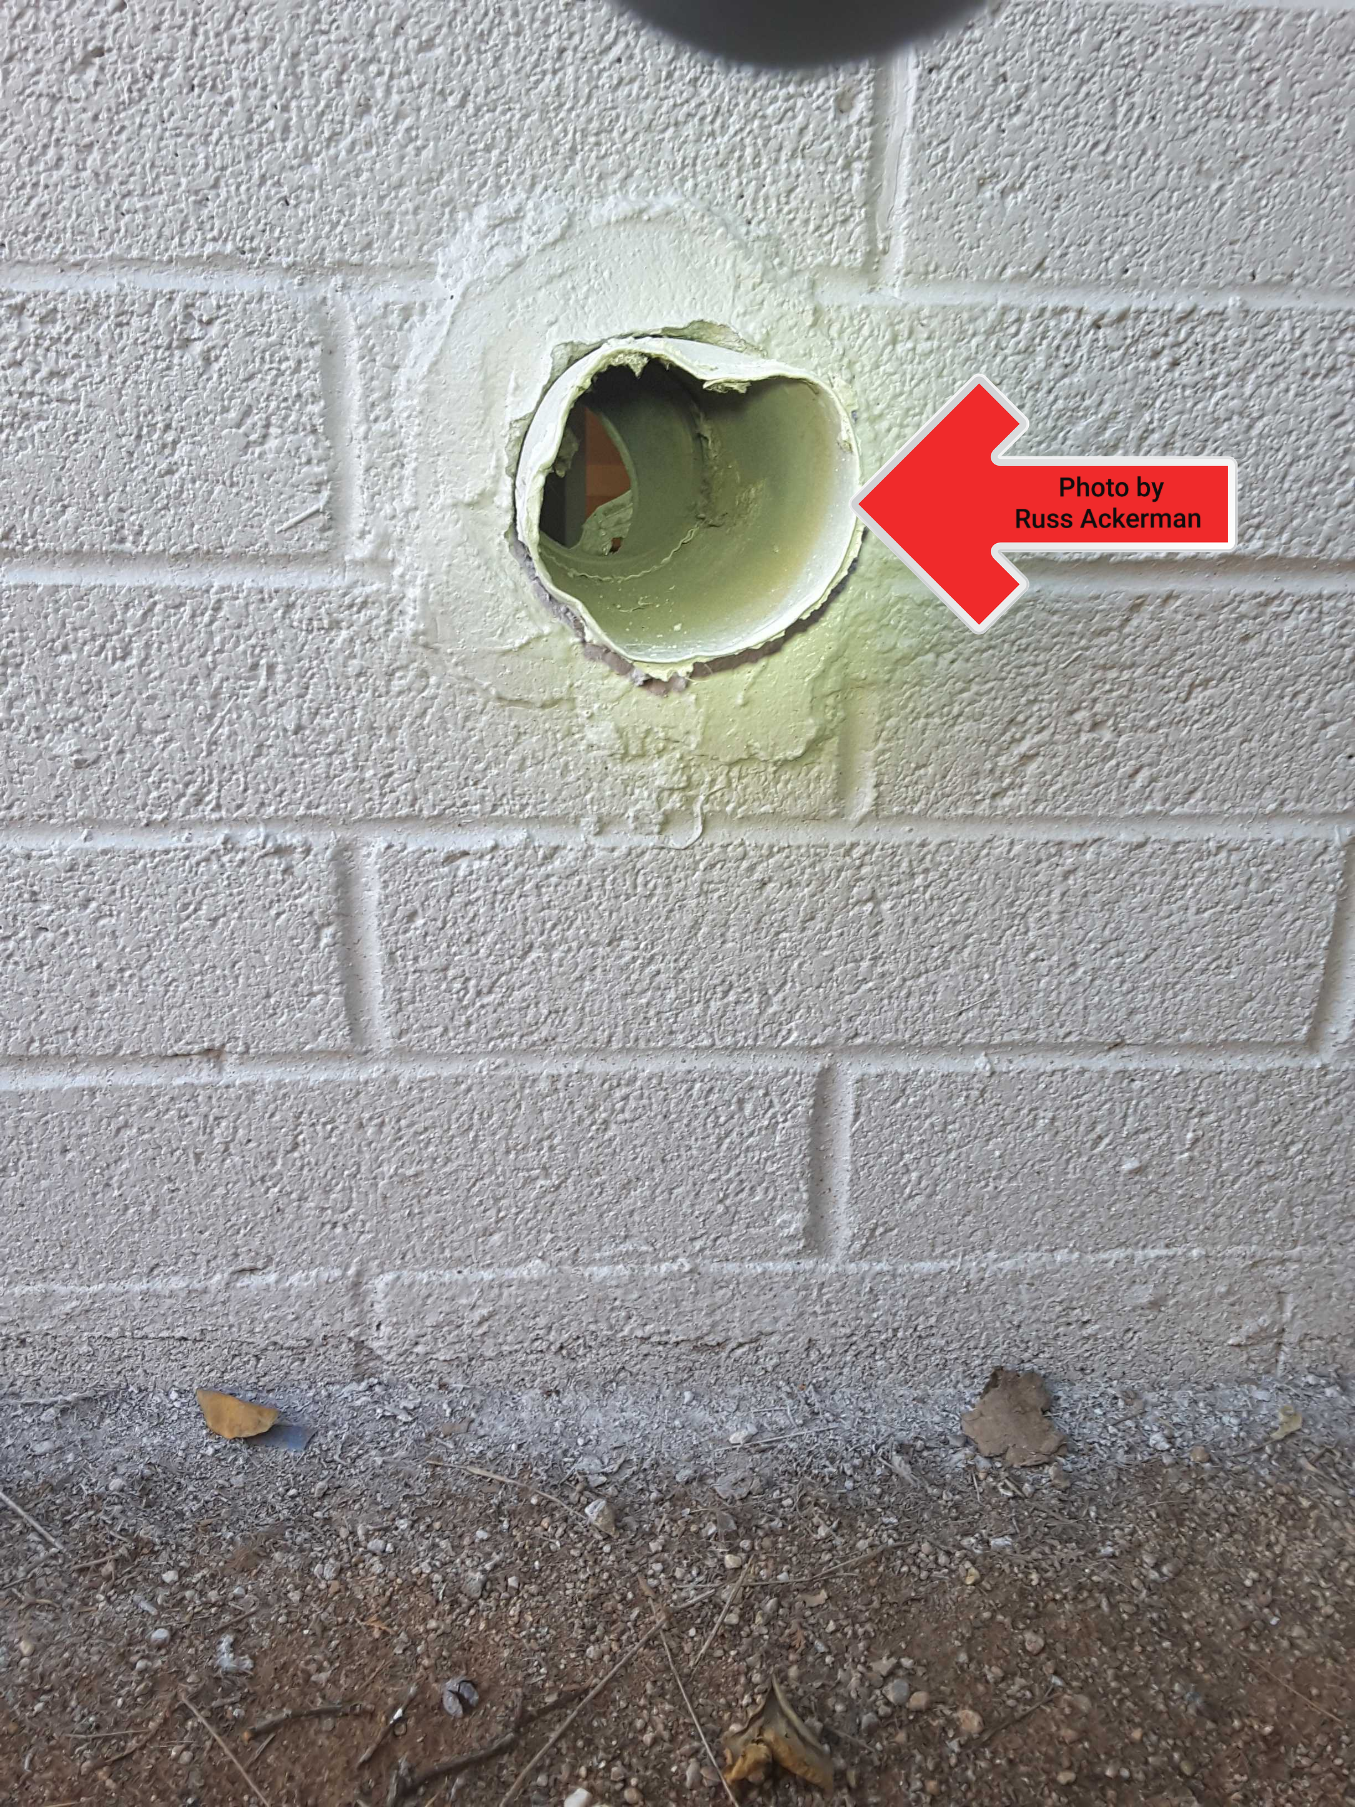 Dryer exhaust vents missing an exterior louvered cap will allow birds, rodents and pests into your home.